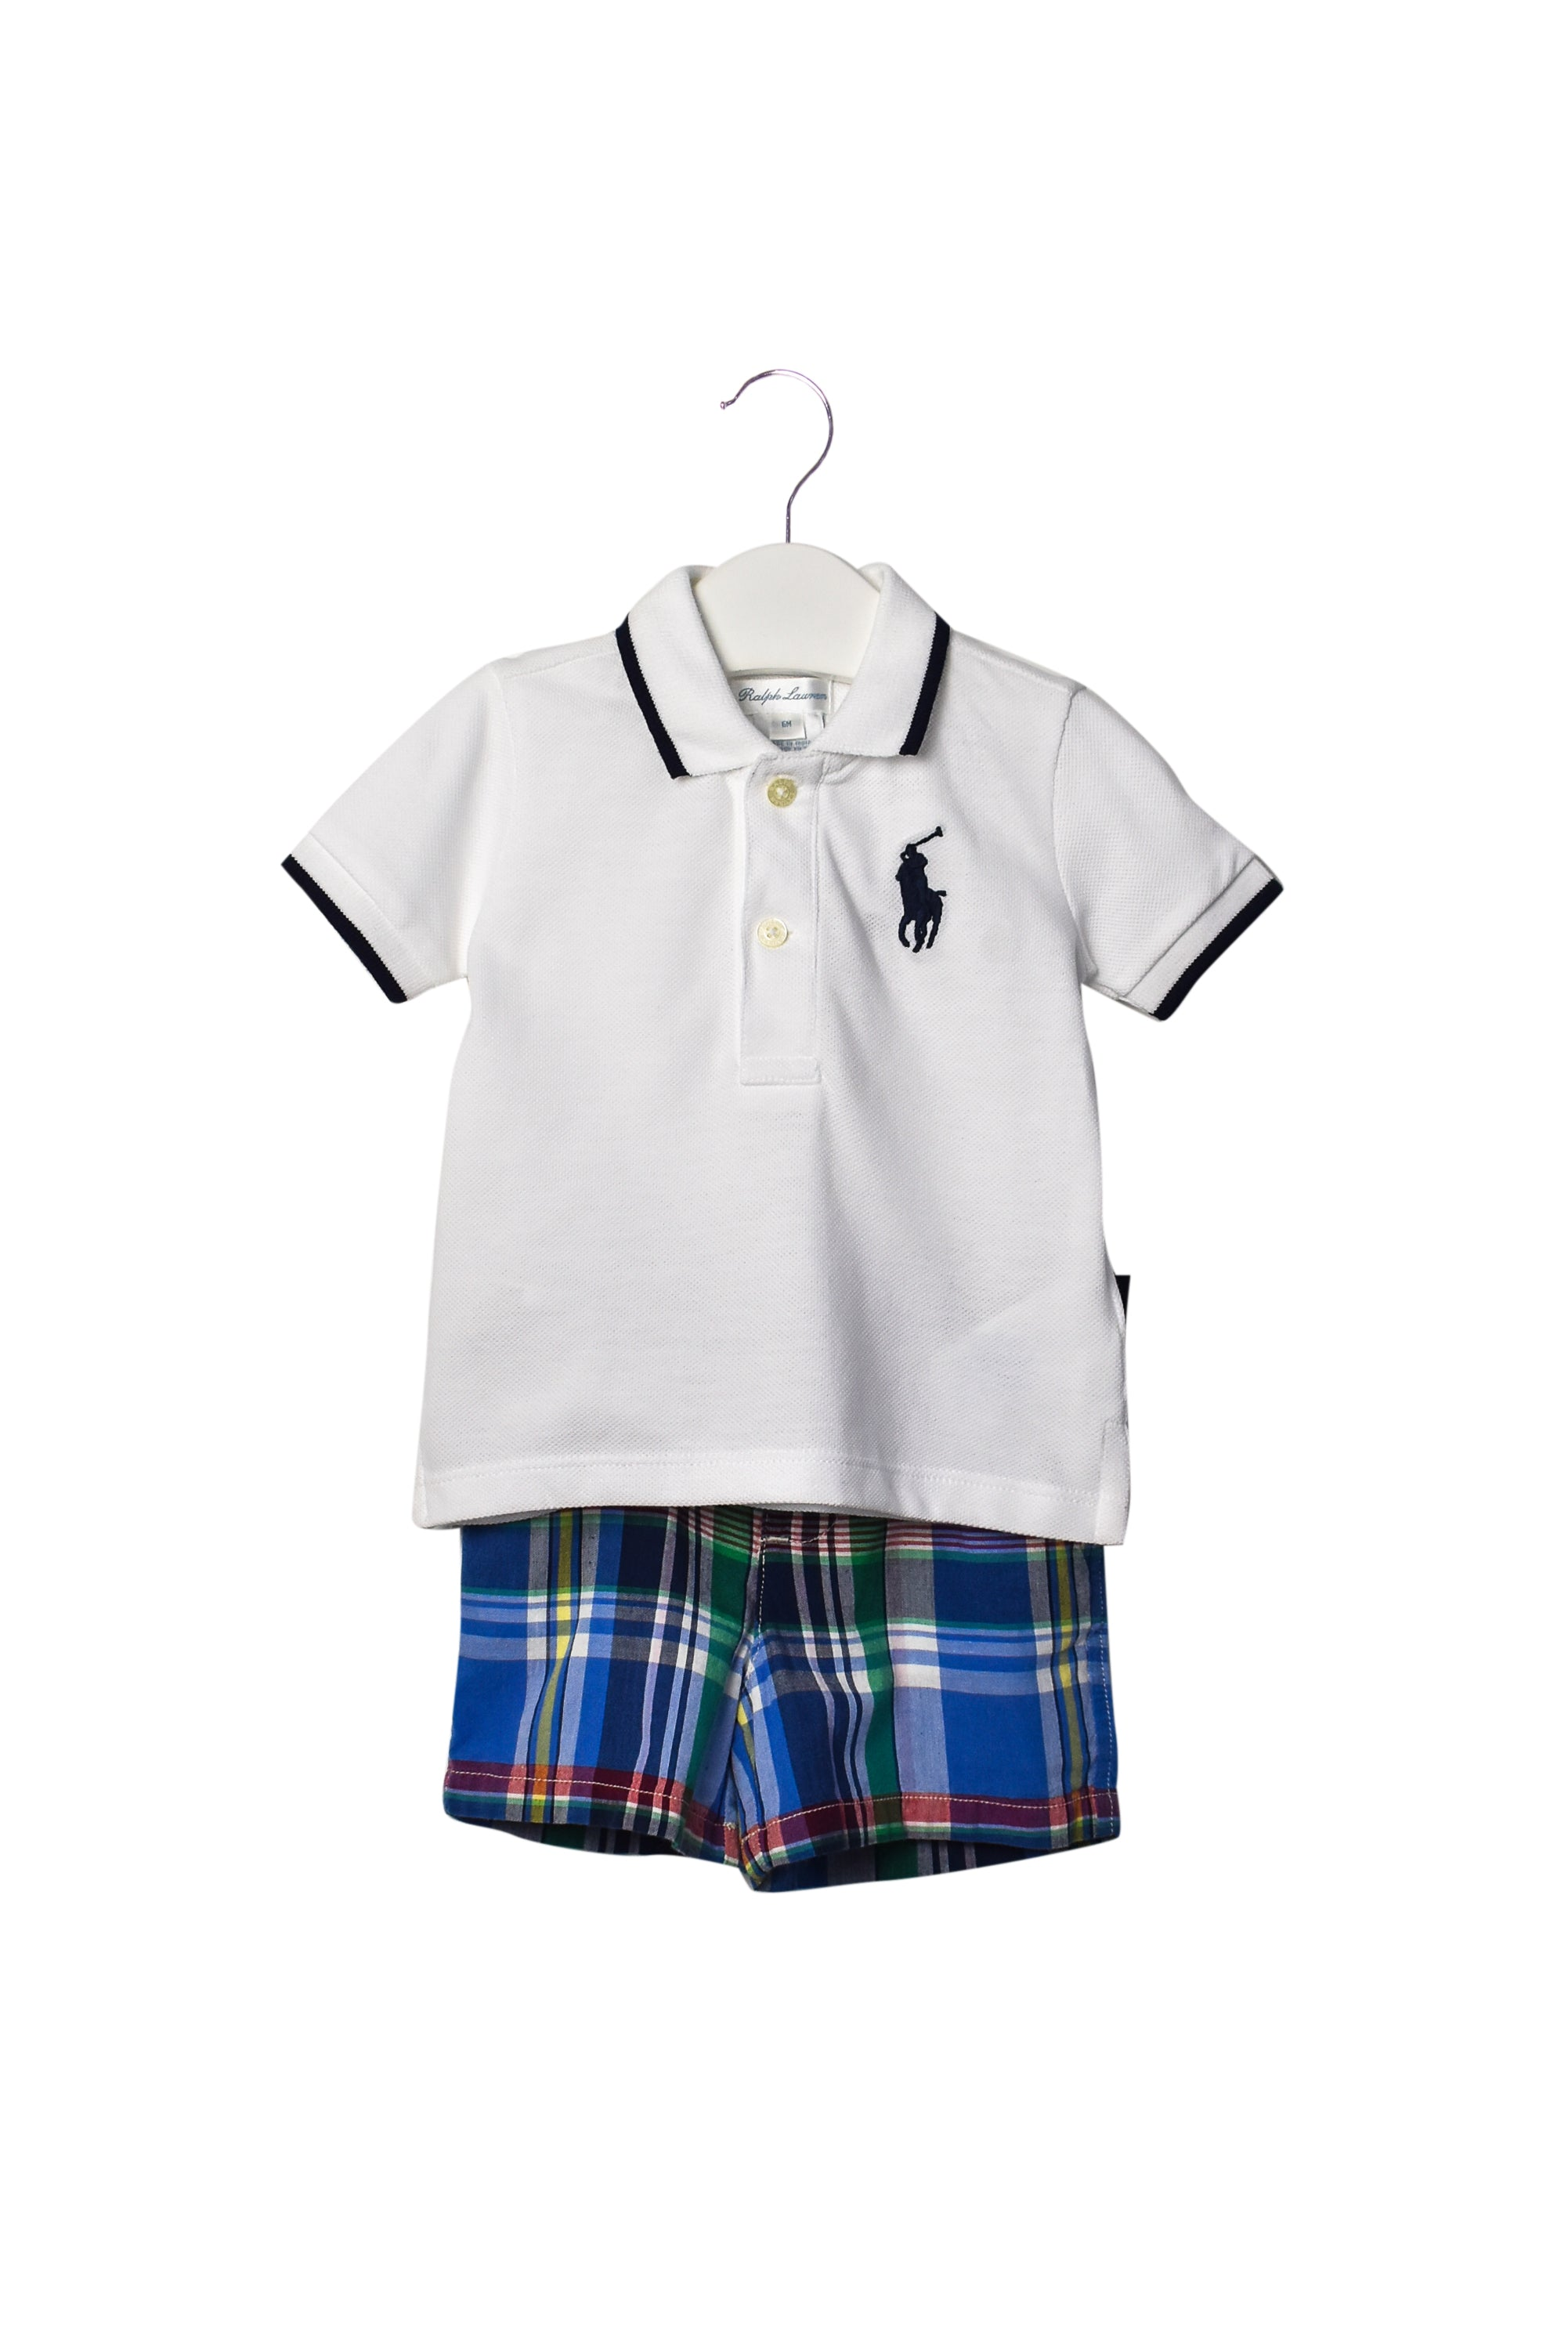 10008020 Ralph Lauren Baby ~ T-Shirt & Shorts Set 6M at Retykle